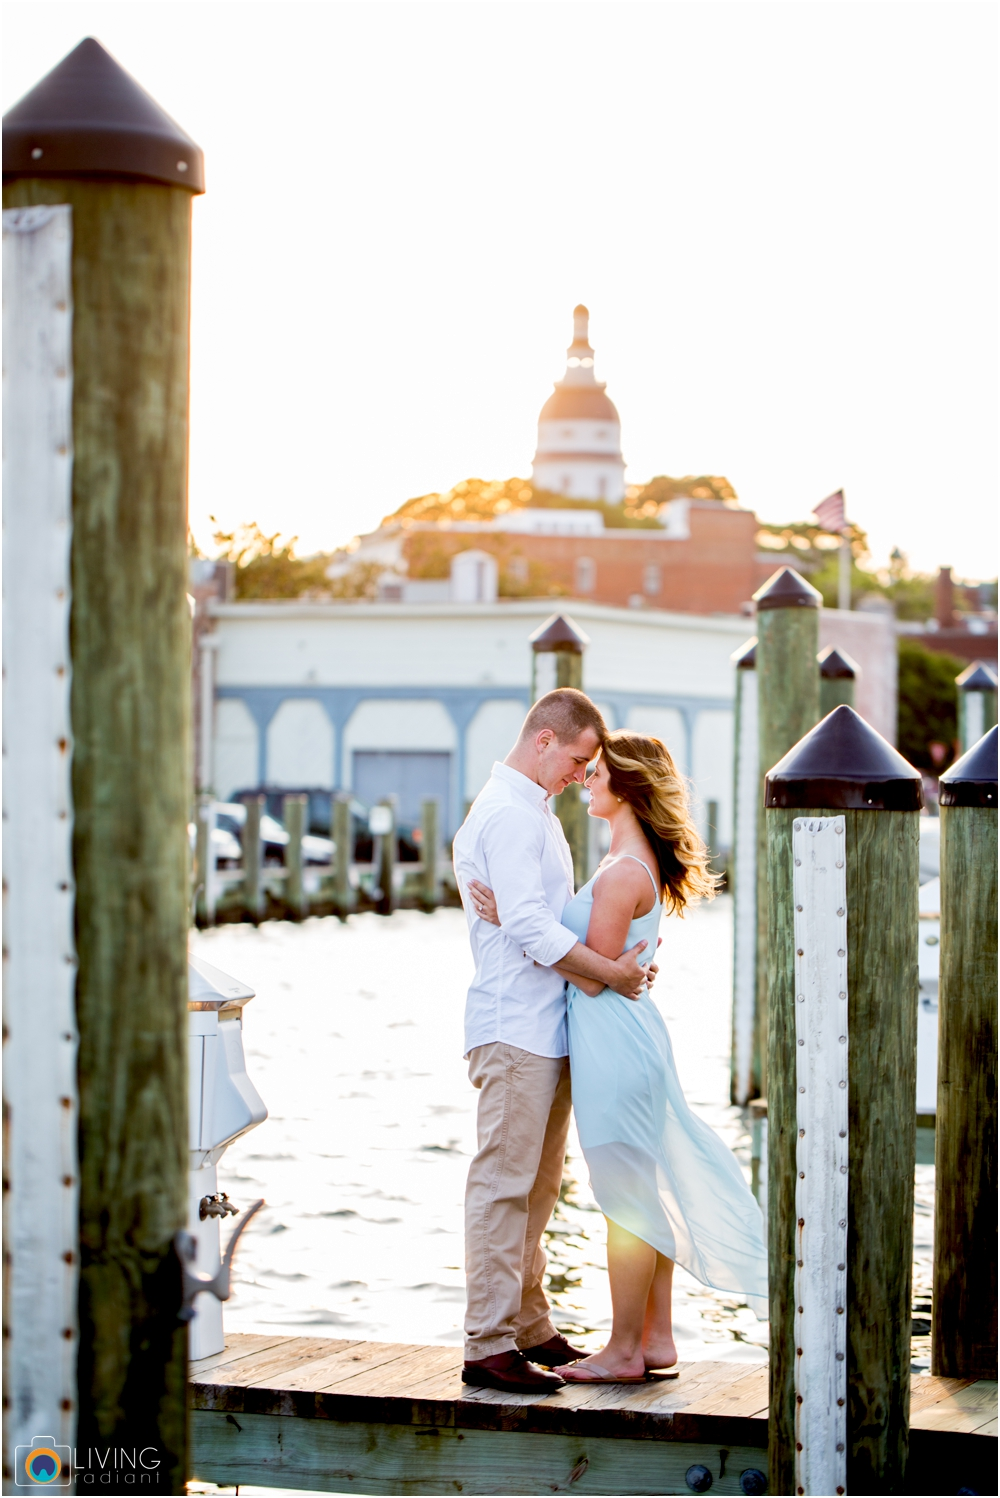 Annapolis-Naval-Academy-Engagement-Wedding-Pictures-Living-Radiant-Photography-Outdoor-Waterfront-Lauren-James_0035.jpg